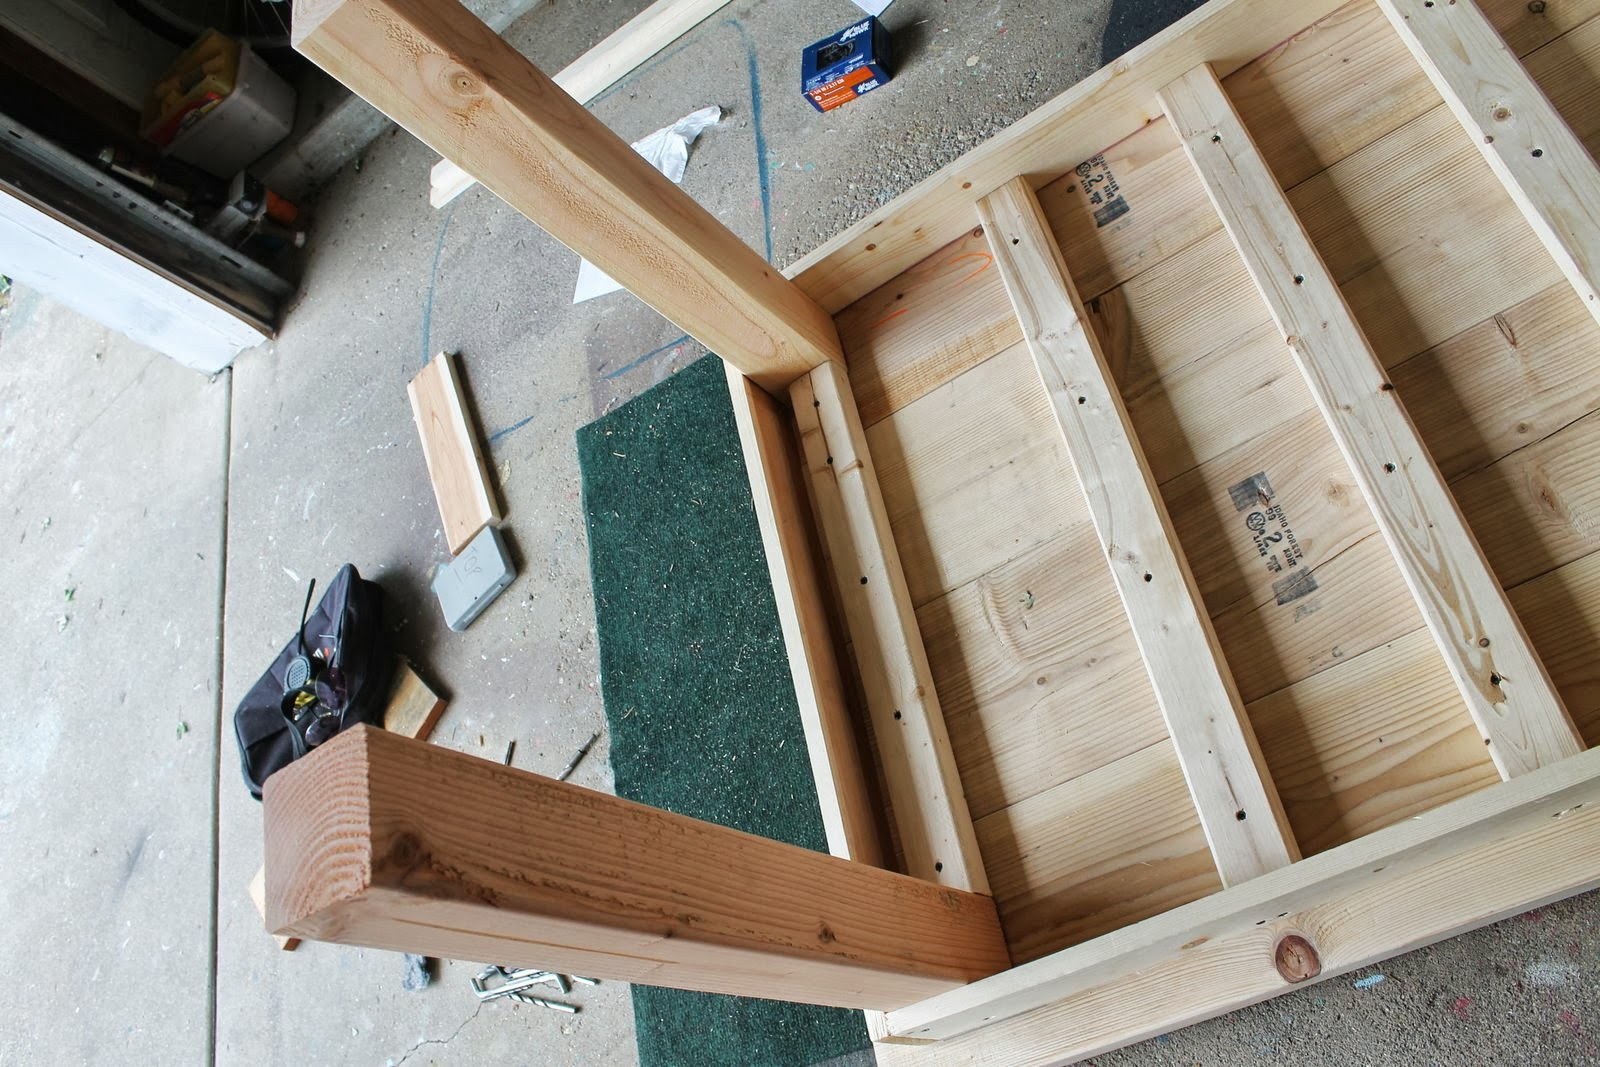 Superieur Underside Of Unfinished Diy Farmhouse Table, Featured On Remodelaholic.com